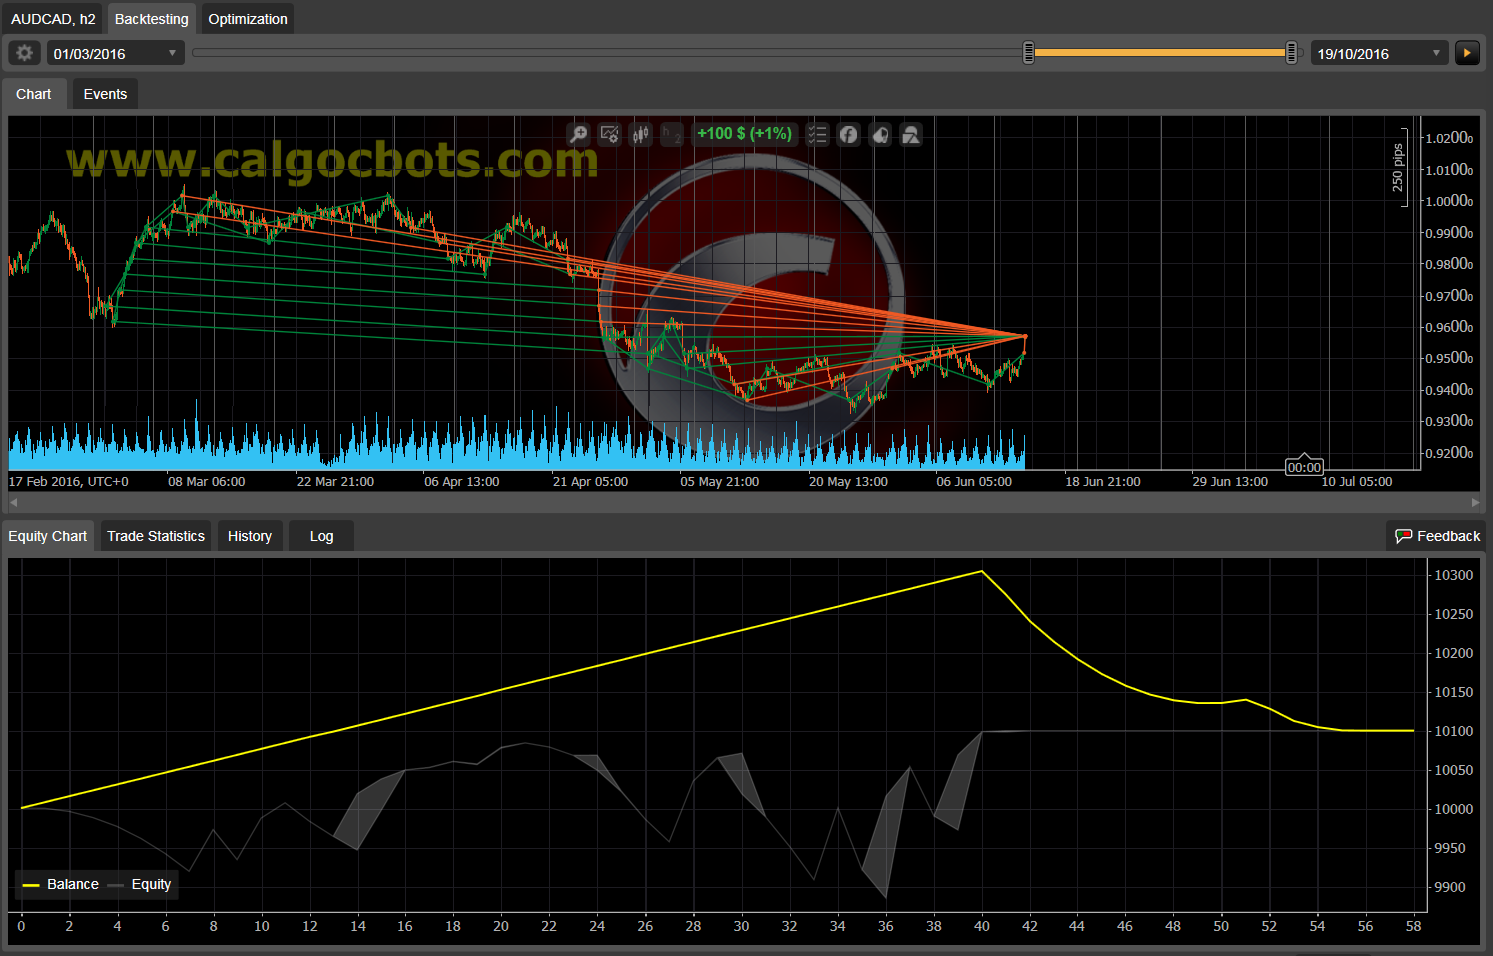 Dual Grid Hedge AUD CAD 1h cAlgo cBots cTrader 1k 100 50 100 - 08 a